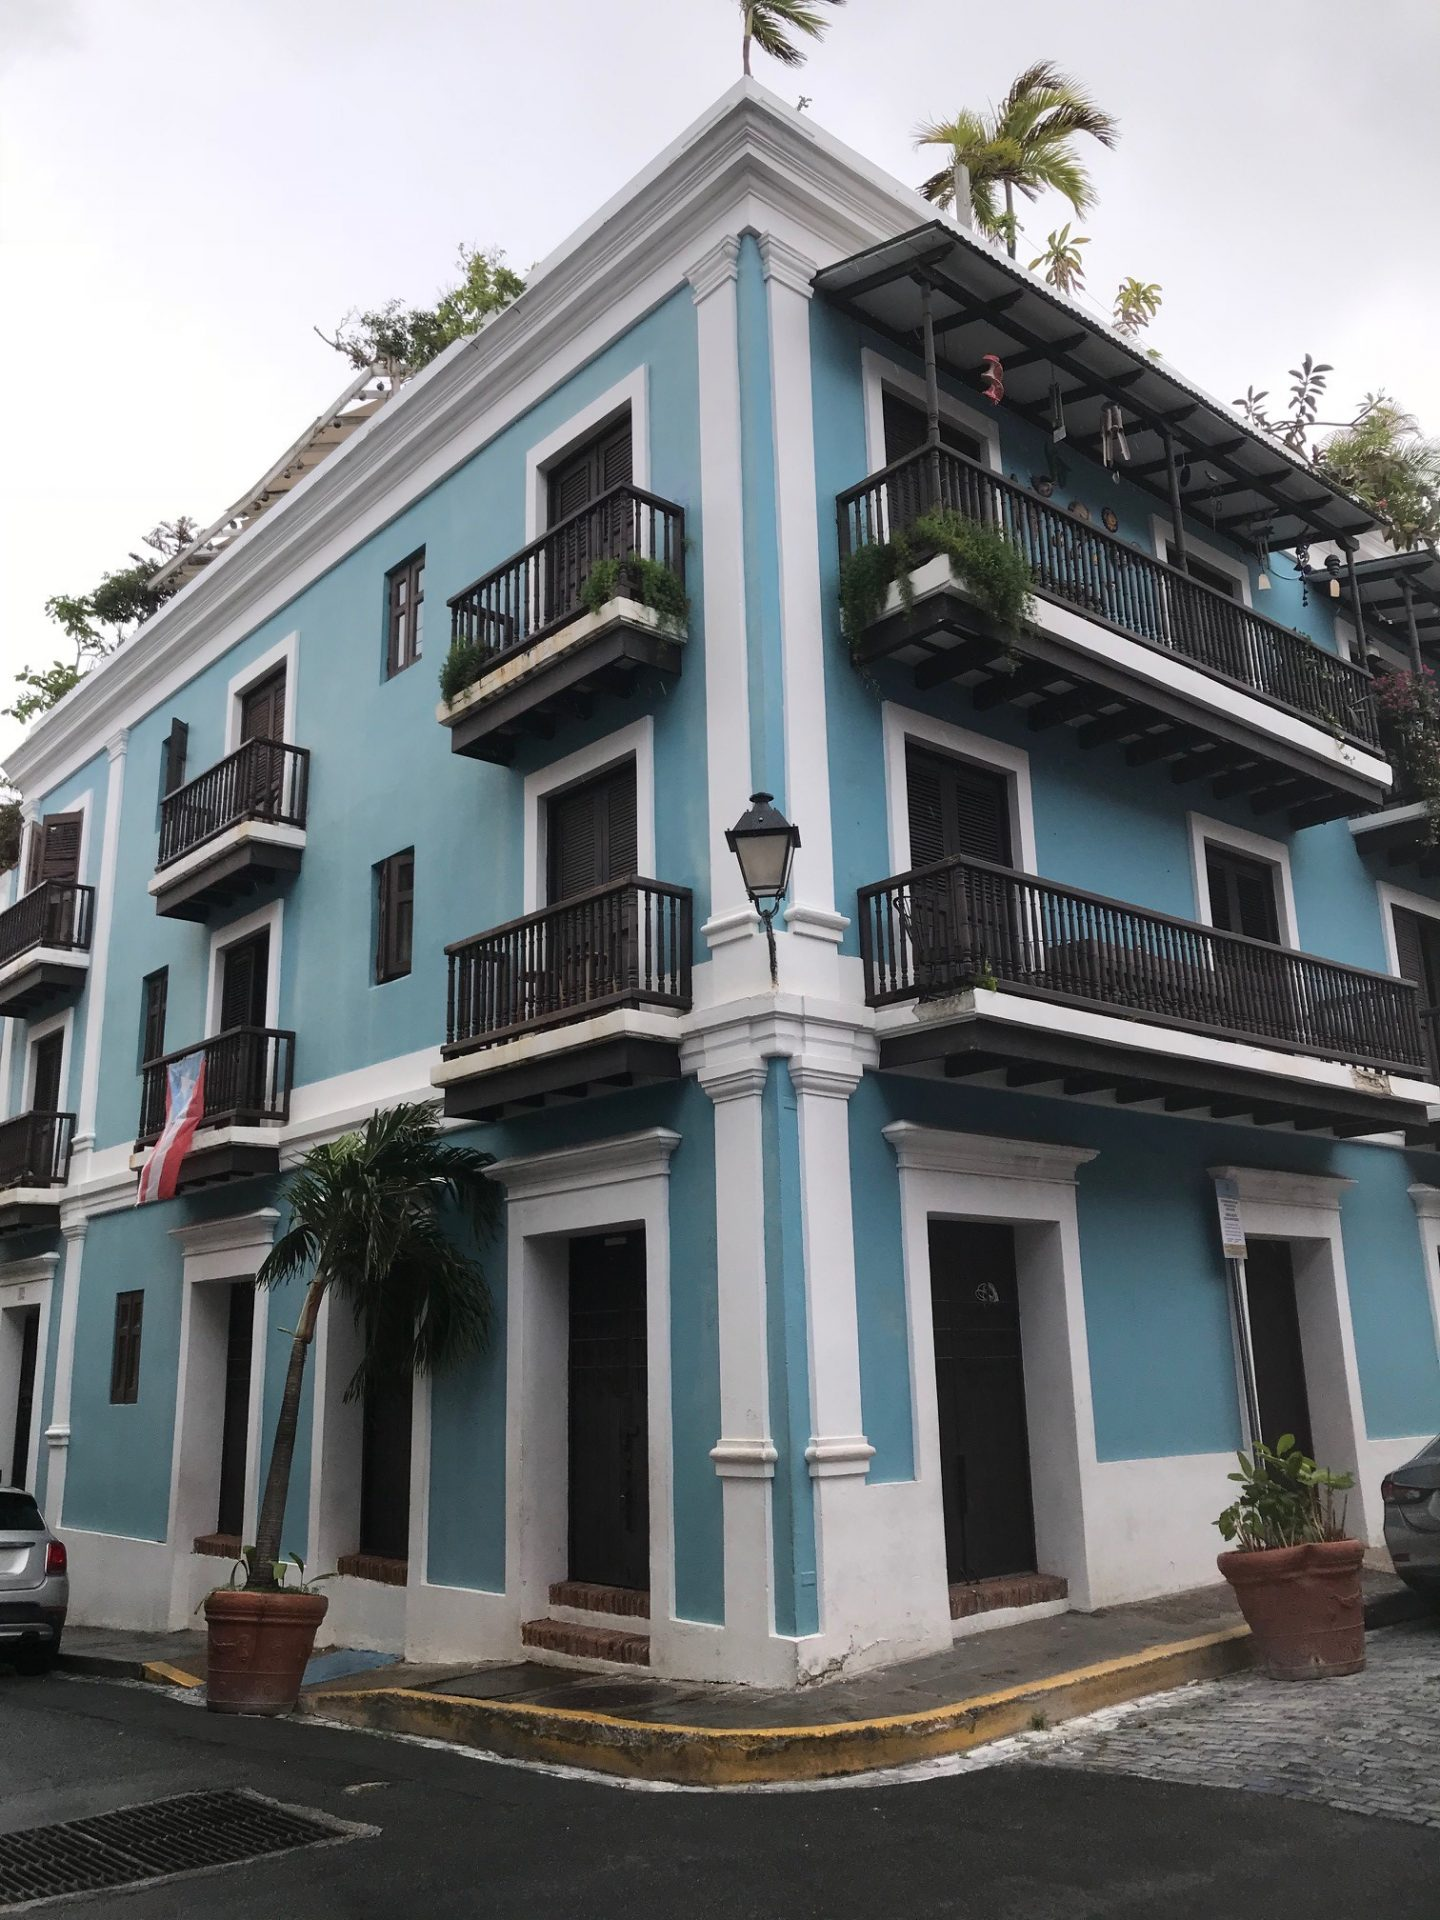 Travel Guide to Old San Juan with The Barefoot Angel - Where to Stay, Which Restaurants to Eat at and What to See and Do!